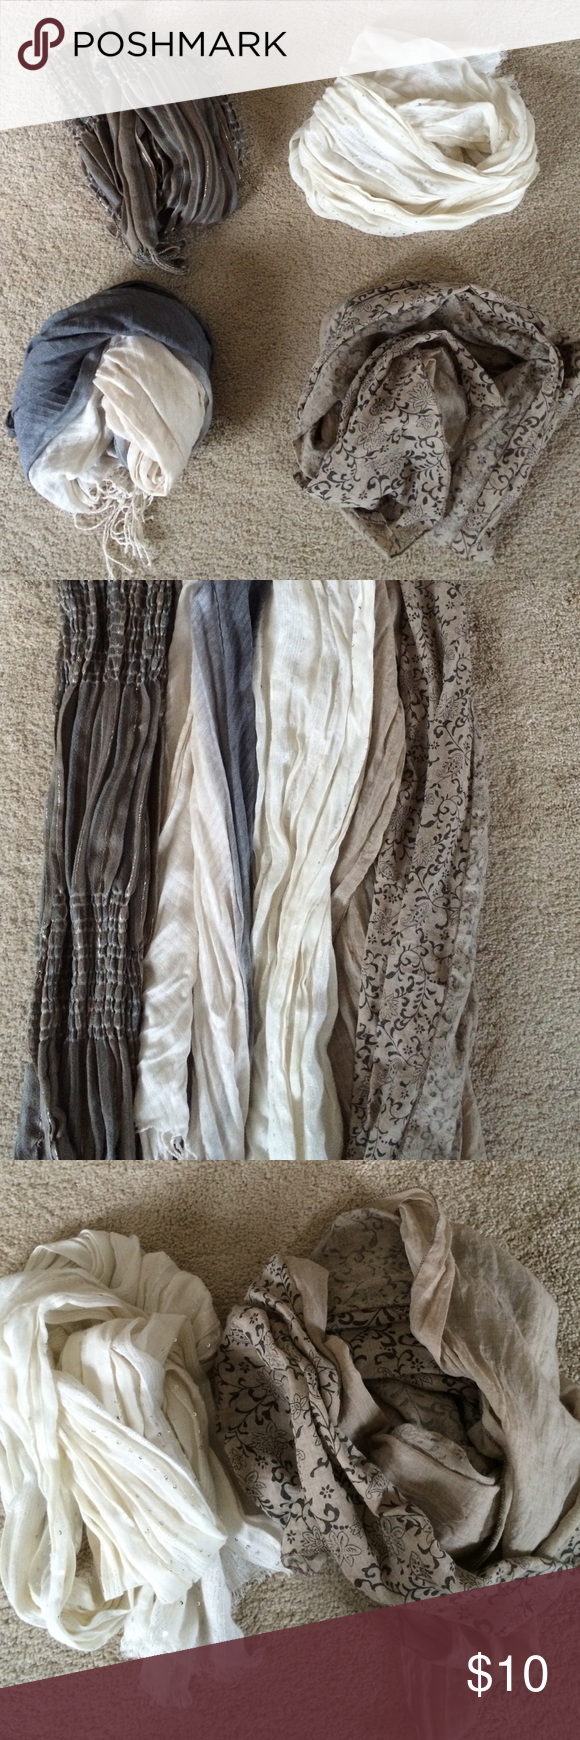 4 scarf bundle 4 scarves-1 is tan with darker brown/black pattern, 1 is cream with silver thread and sequence, 1 goes from dark gray to a lighter gray to cream, and the last one is tan, brown, blue and silver.  Great addition to a scarf collection!  I just have to many, so some have to go! Accessories Scarves & Wraps